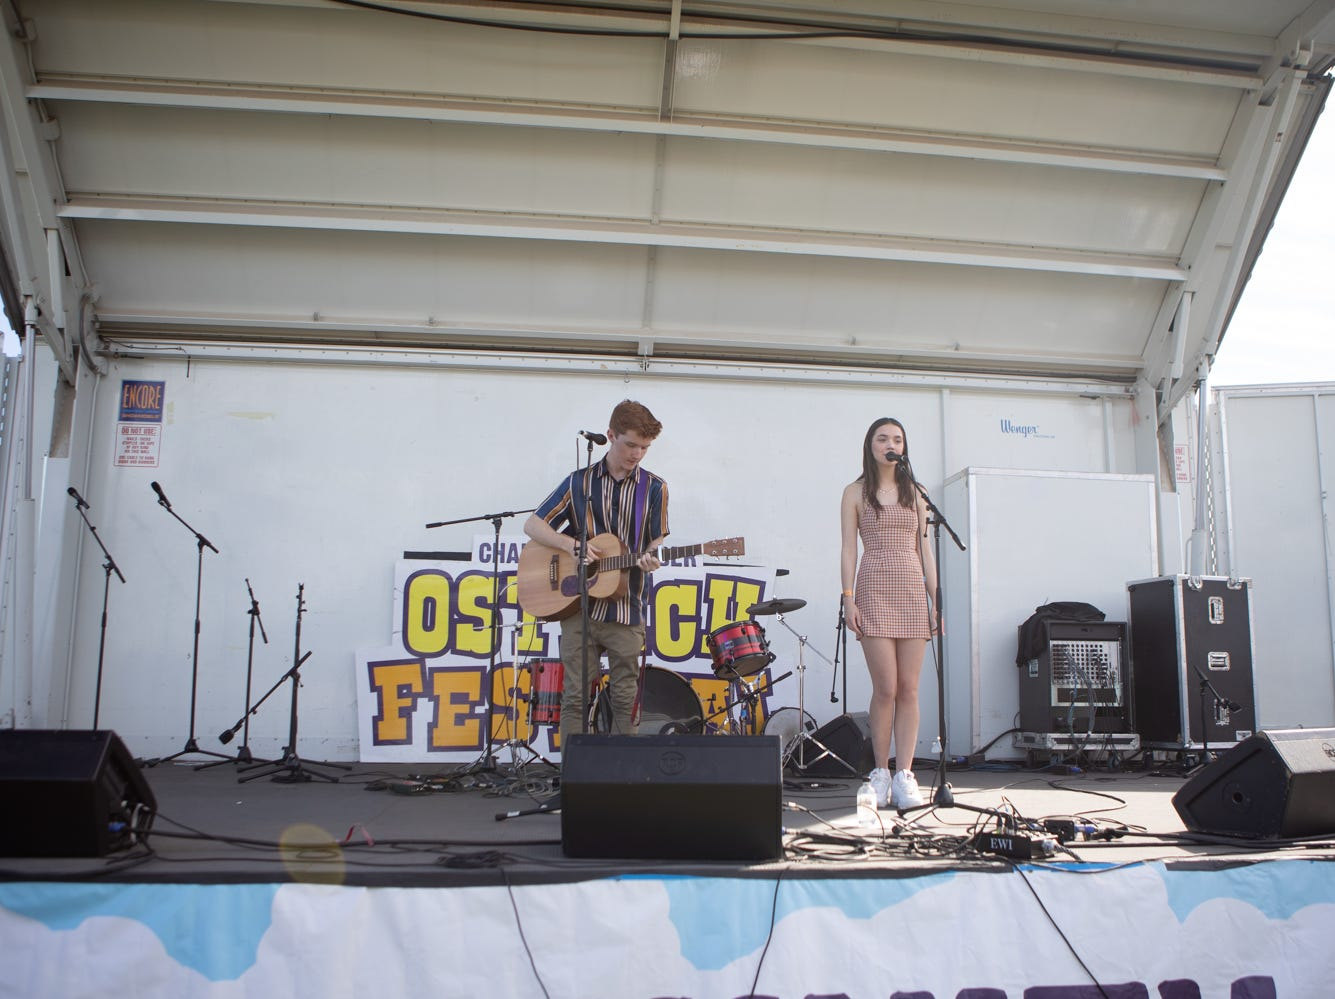 There was plenty of music to check out at the Chandler Ostrich Festival on Sunday, March. 10, 2019.